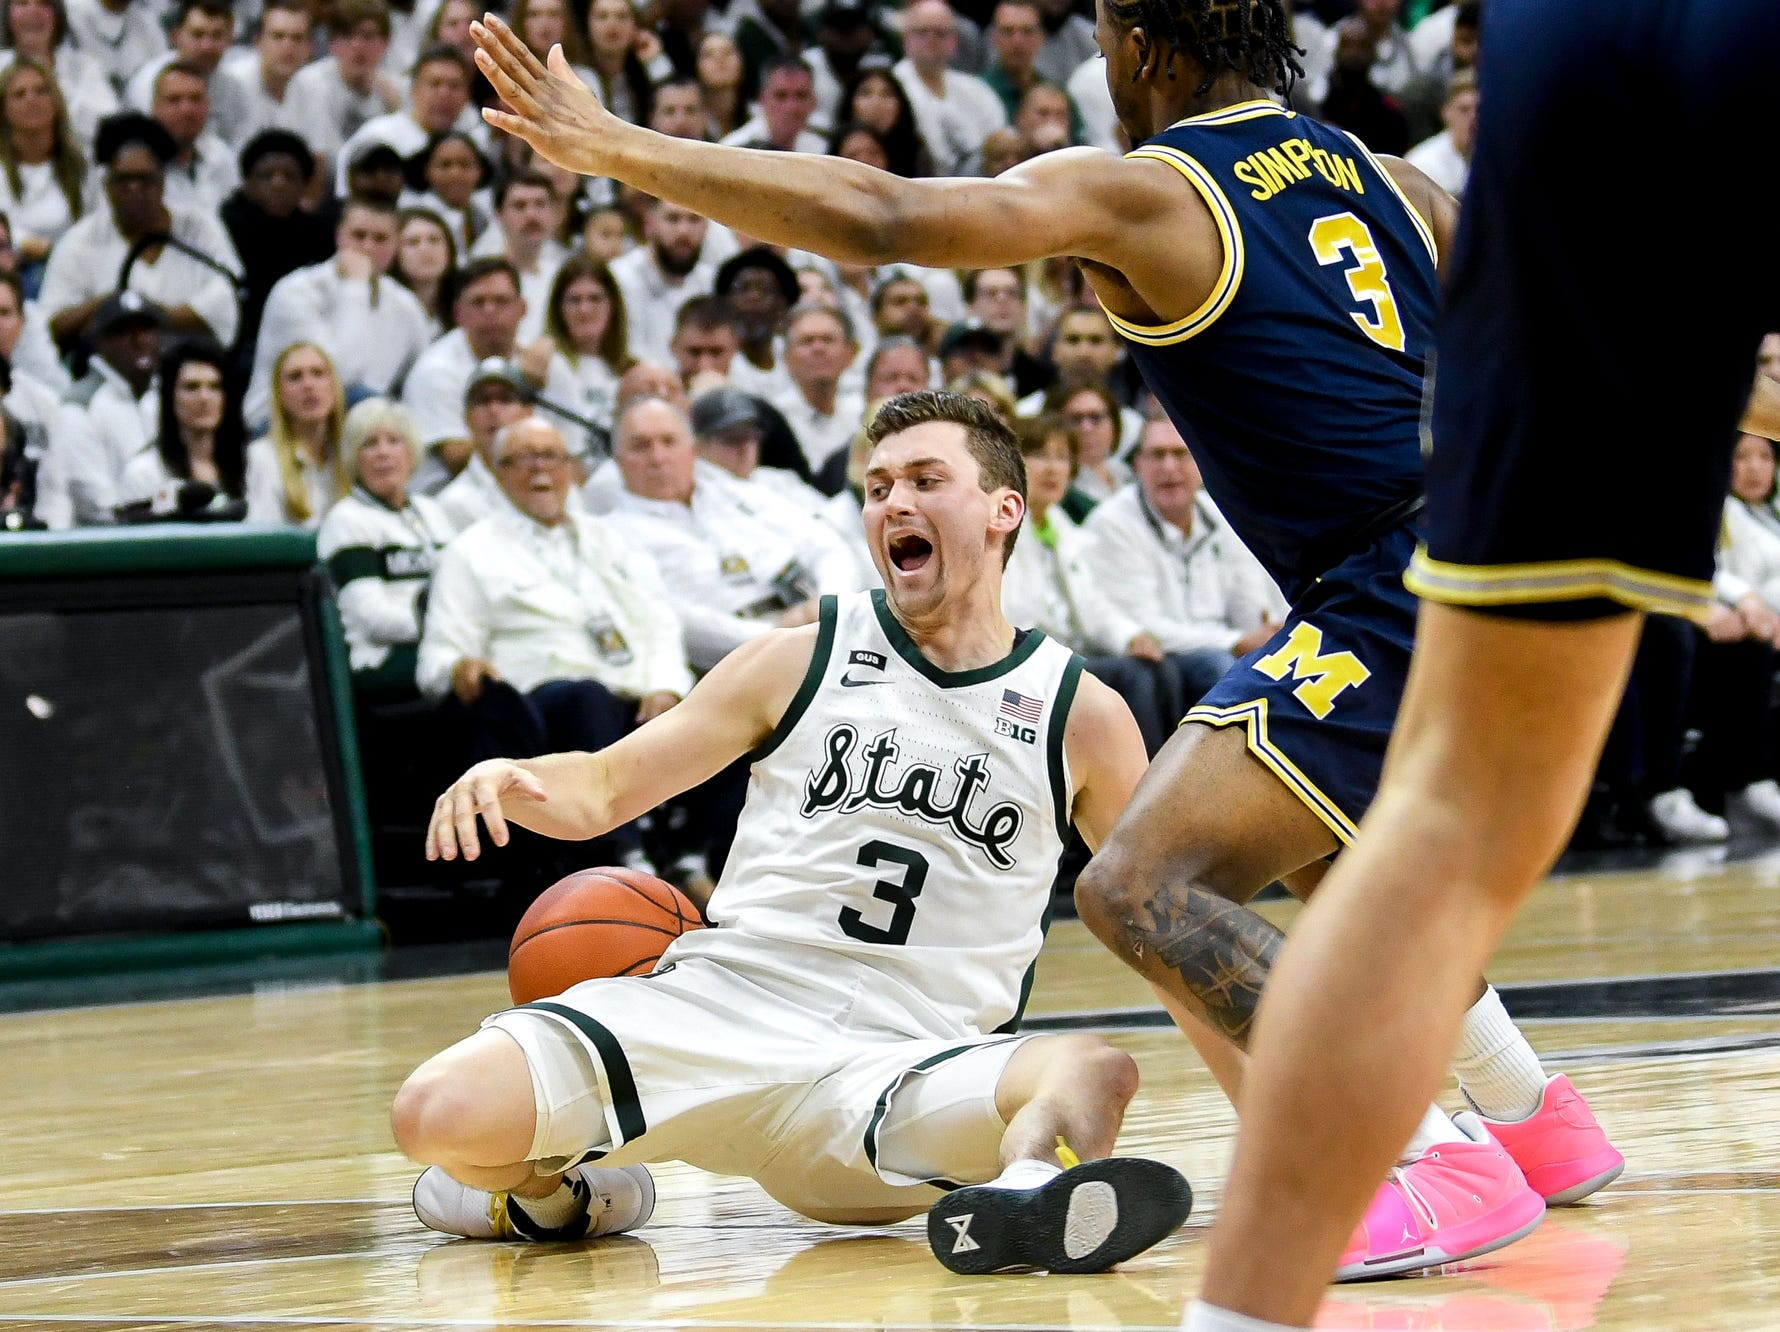 Michigan State's Foster Loyer falls to the ground after drawing a foul on Michigan's Zavier Simpson during the first half on Saturday, March 9, 2019, at the Breslin Center in East Lansing.